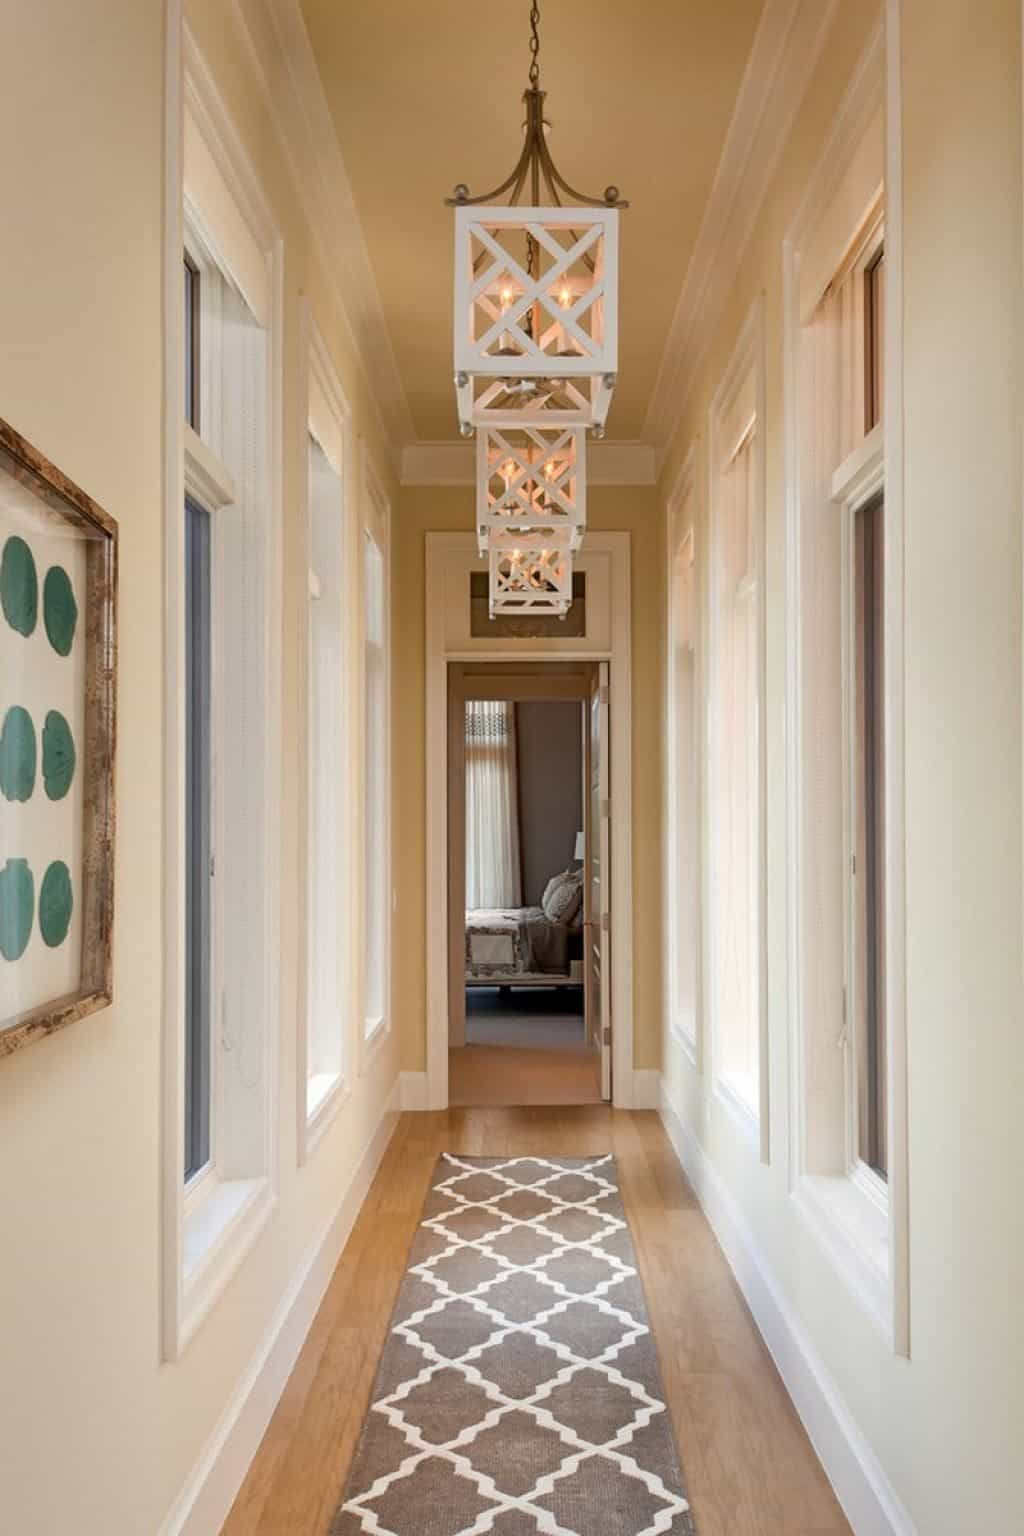 Decorating Ideas For Narrow Hallway | Hallway designs ... on red hall ideas, entrance hall ideas, little hall ideas, modern hall ideas,